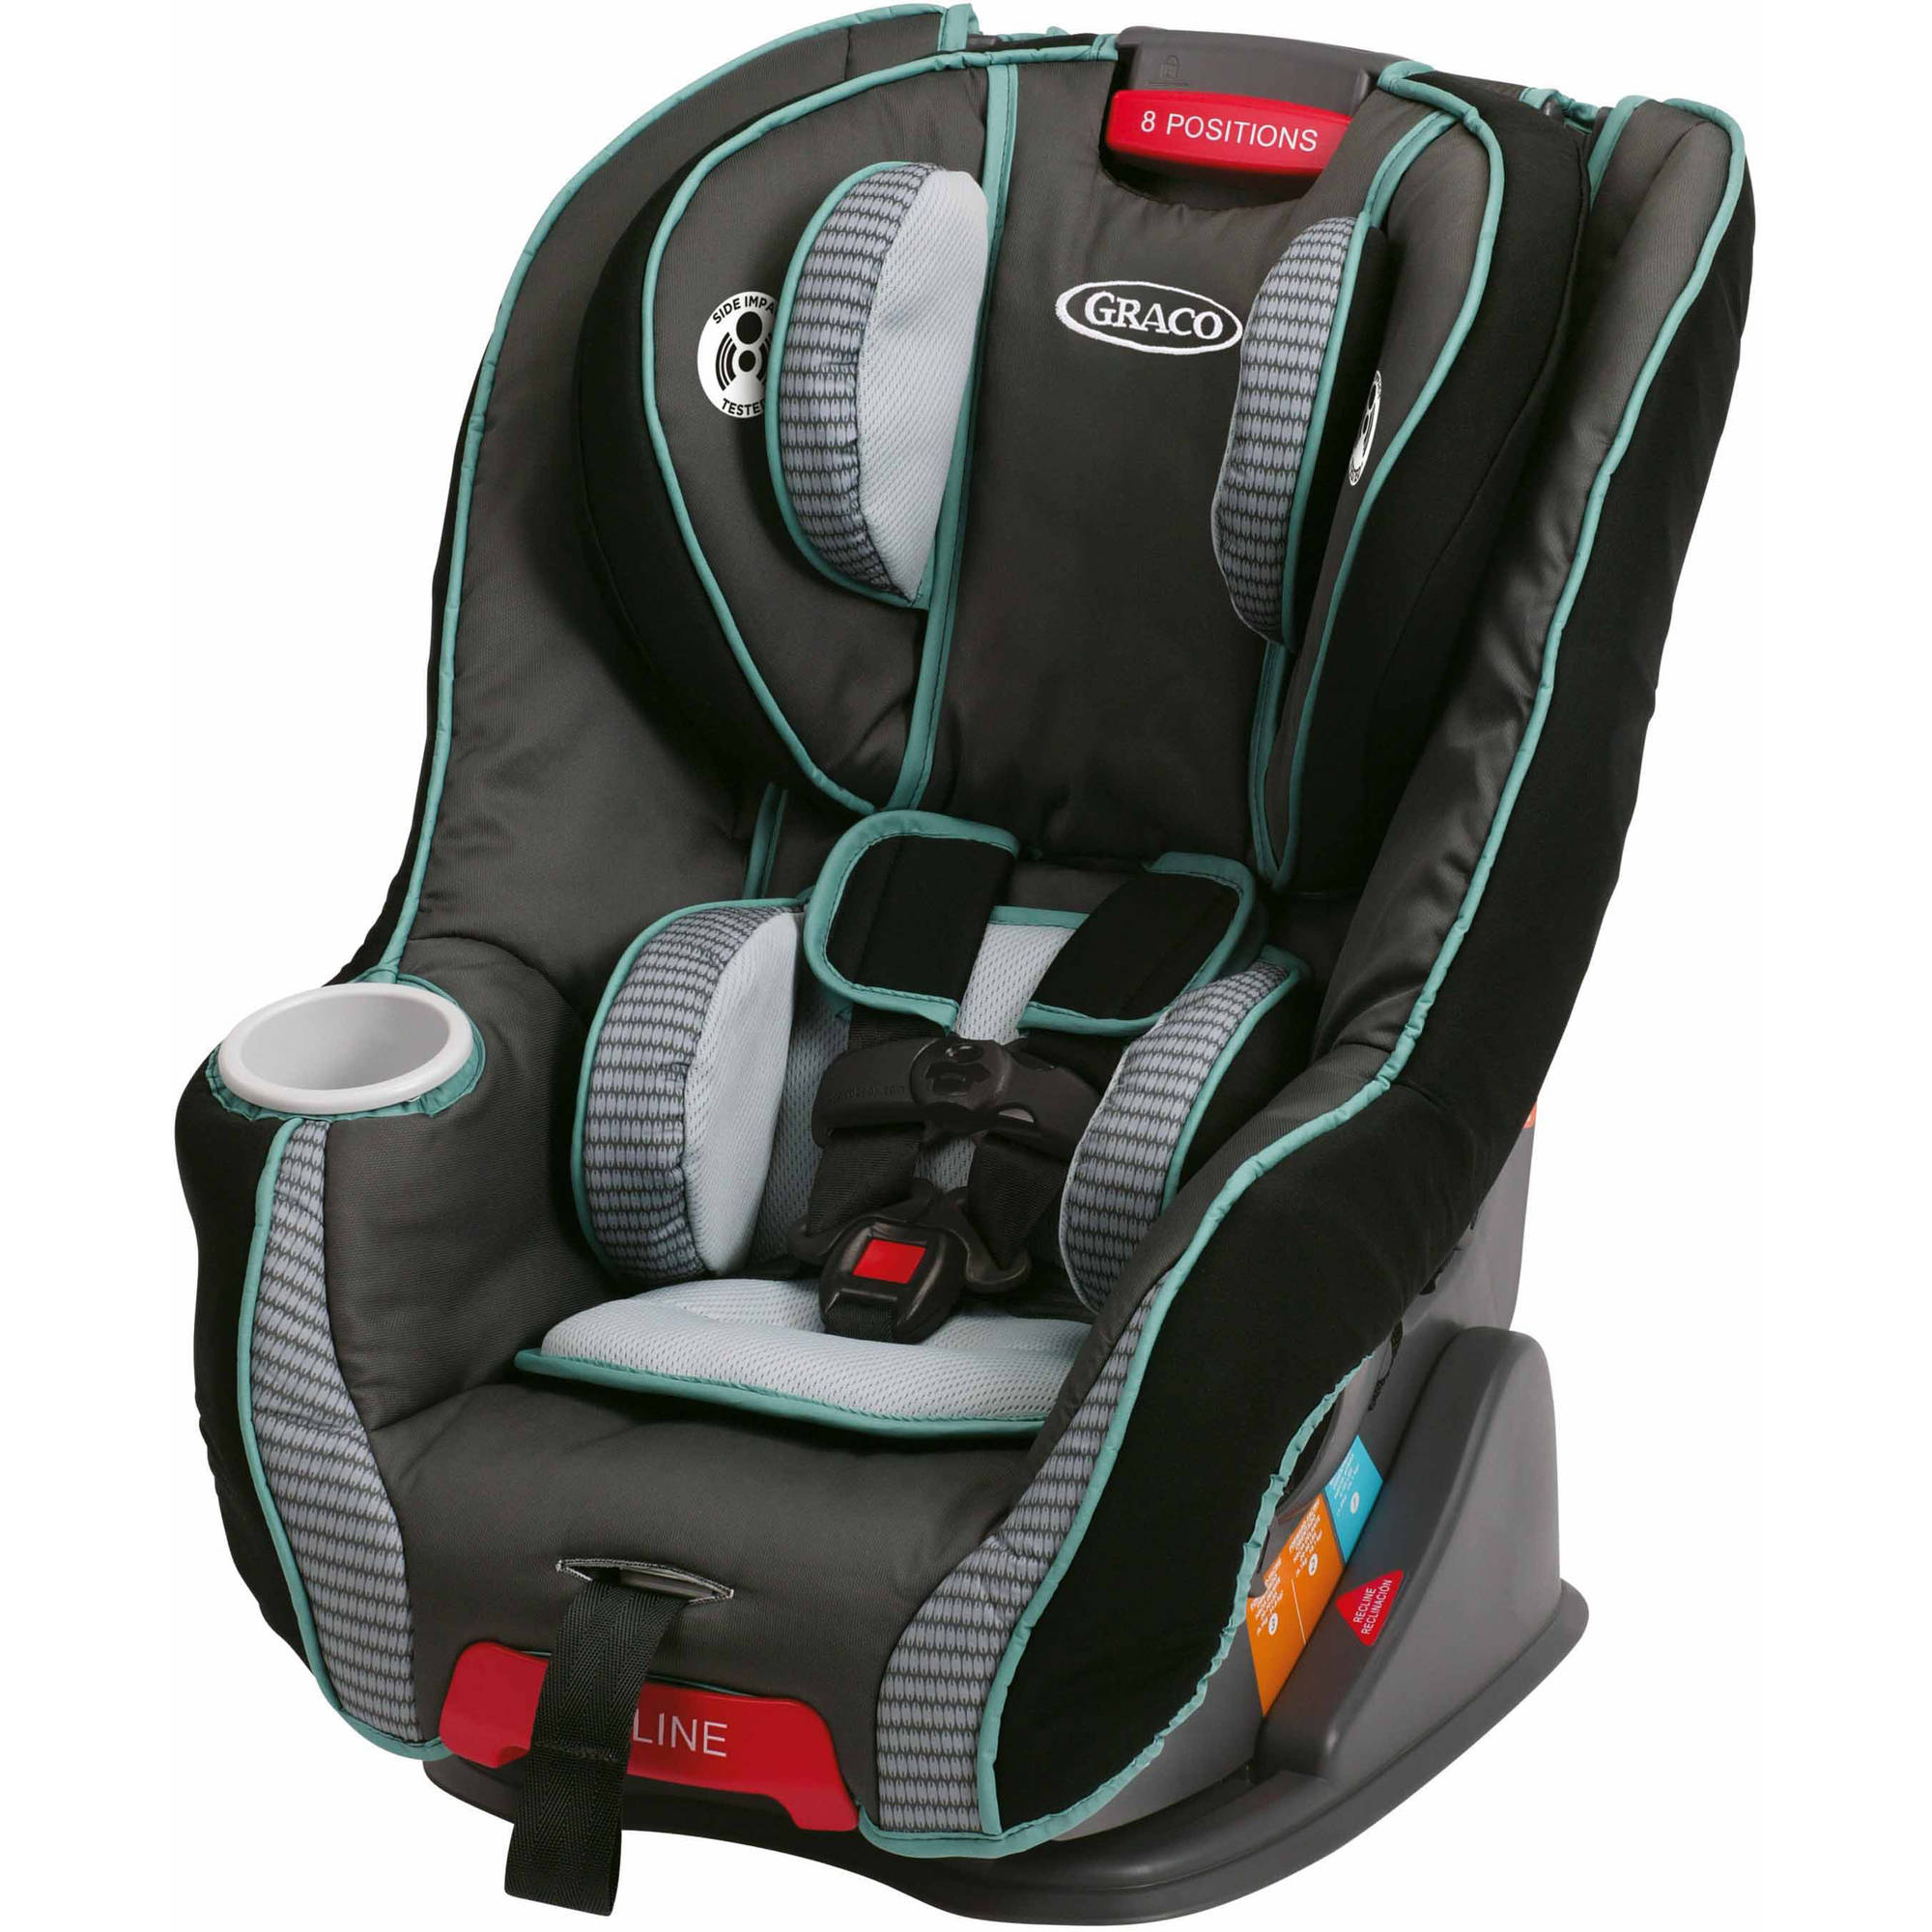 Graco Fit4Me 65 Convertible Baby Car Seat, Choose Your Color